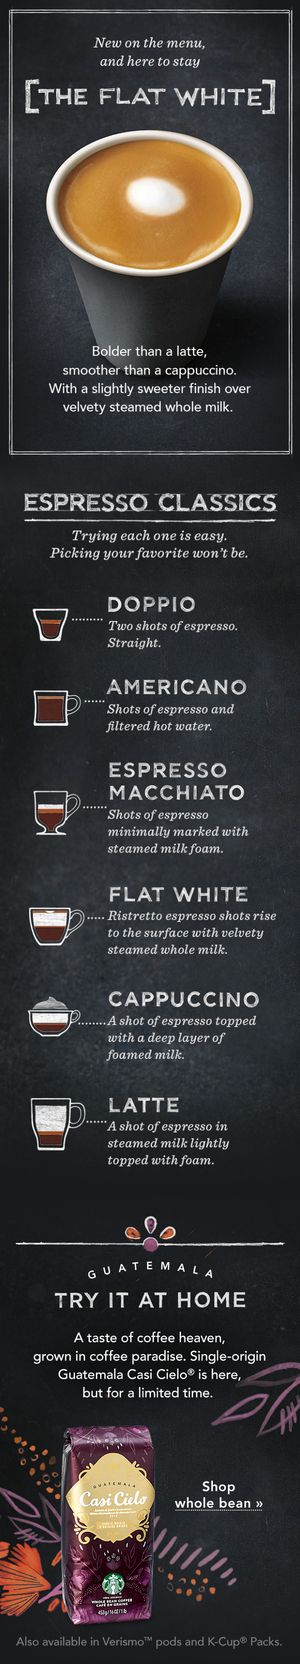 Starbucks Espresso Infographic Advertising